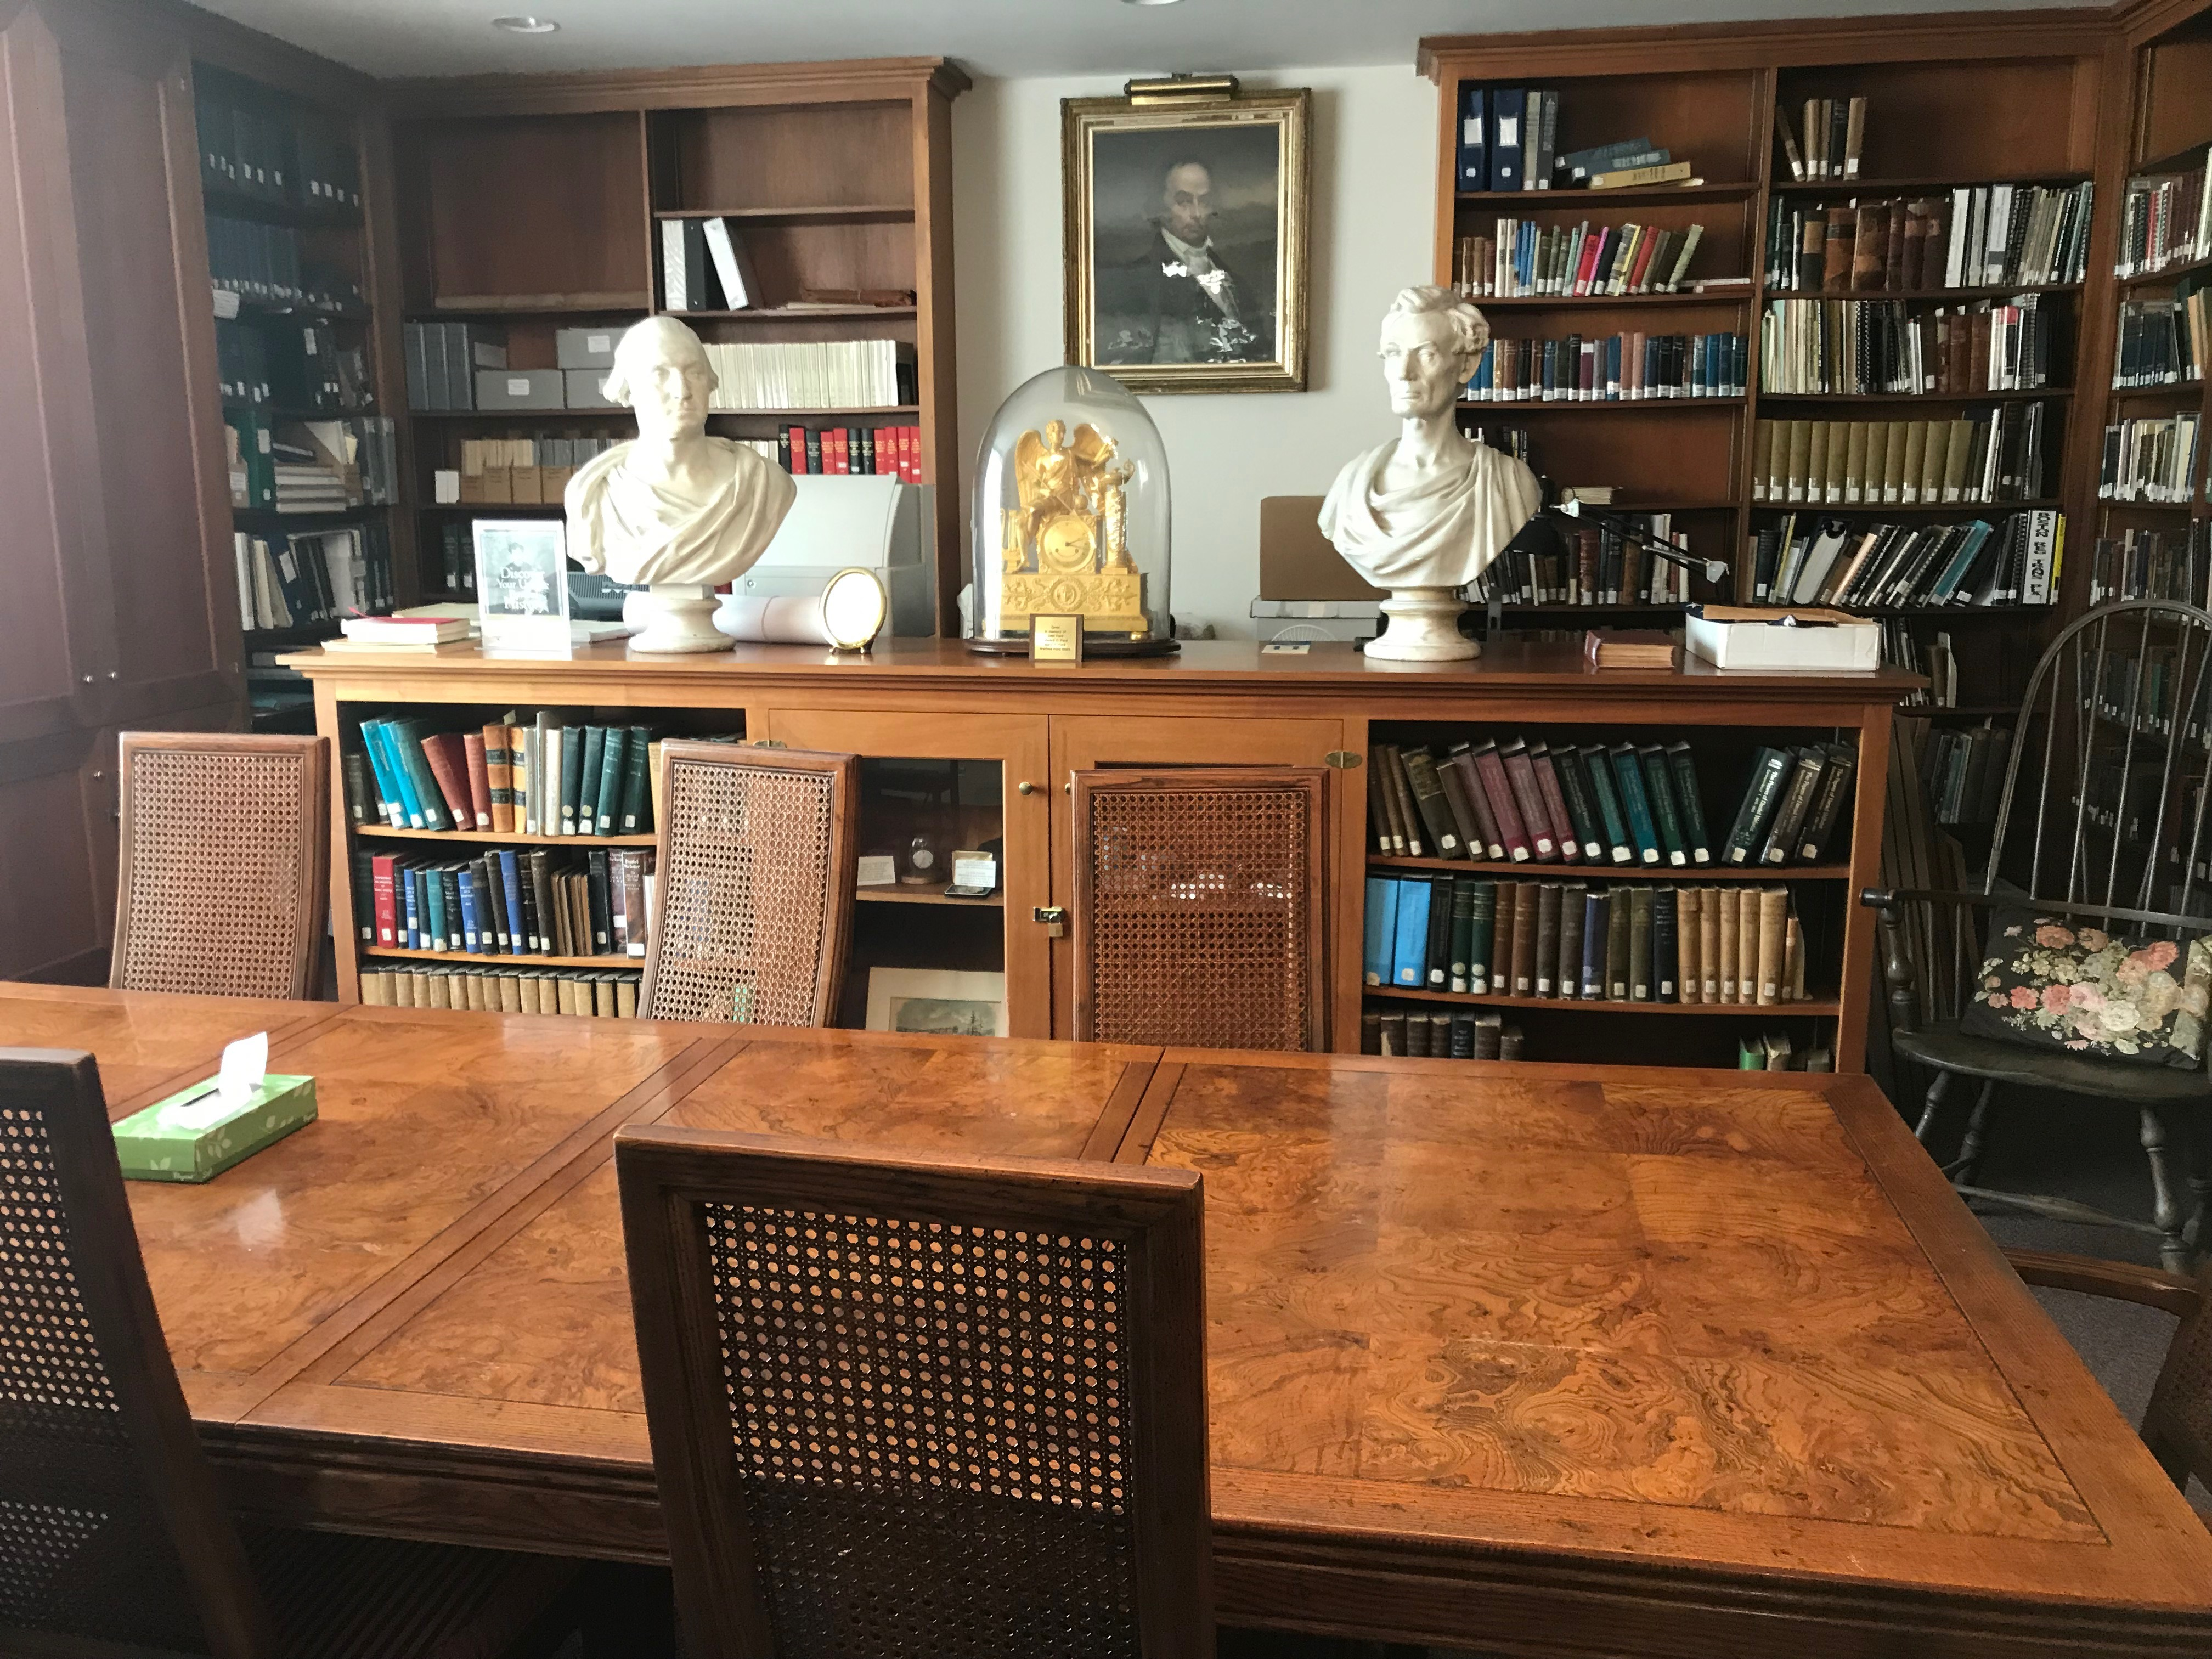 image of historical room with antique wooden furniture, busts of famous Massachusetts figures, and a gold clock